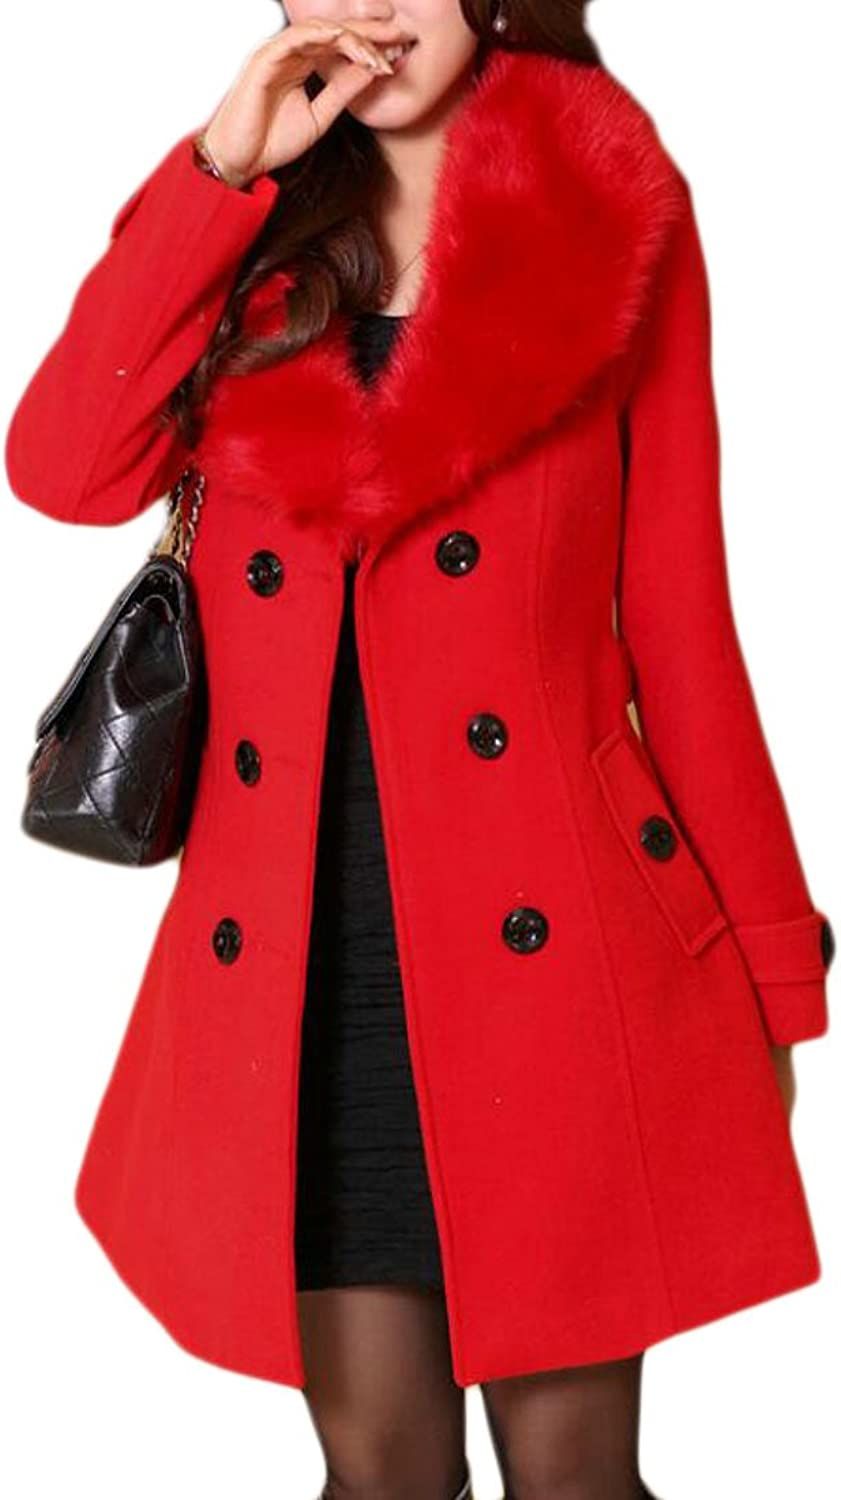 KLJRWomen Double Breasted Faux Fur Collar Winter Thick Long Coat